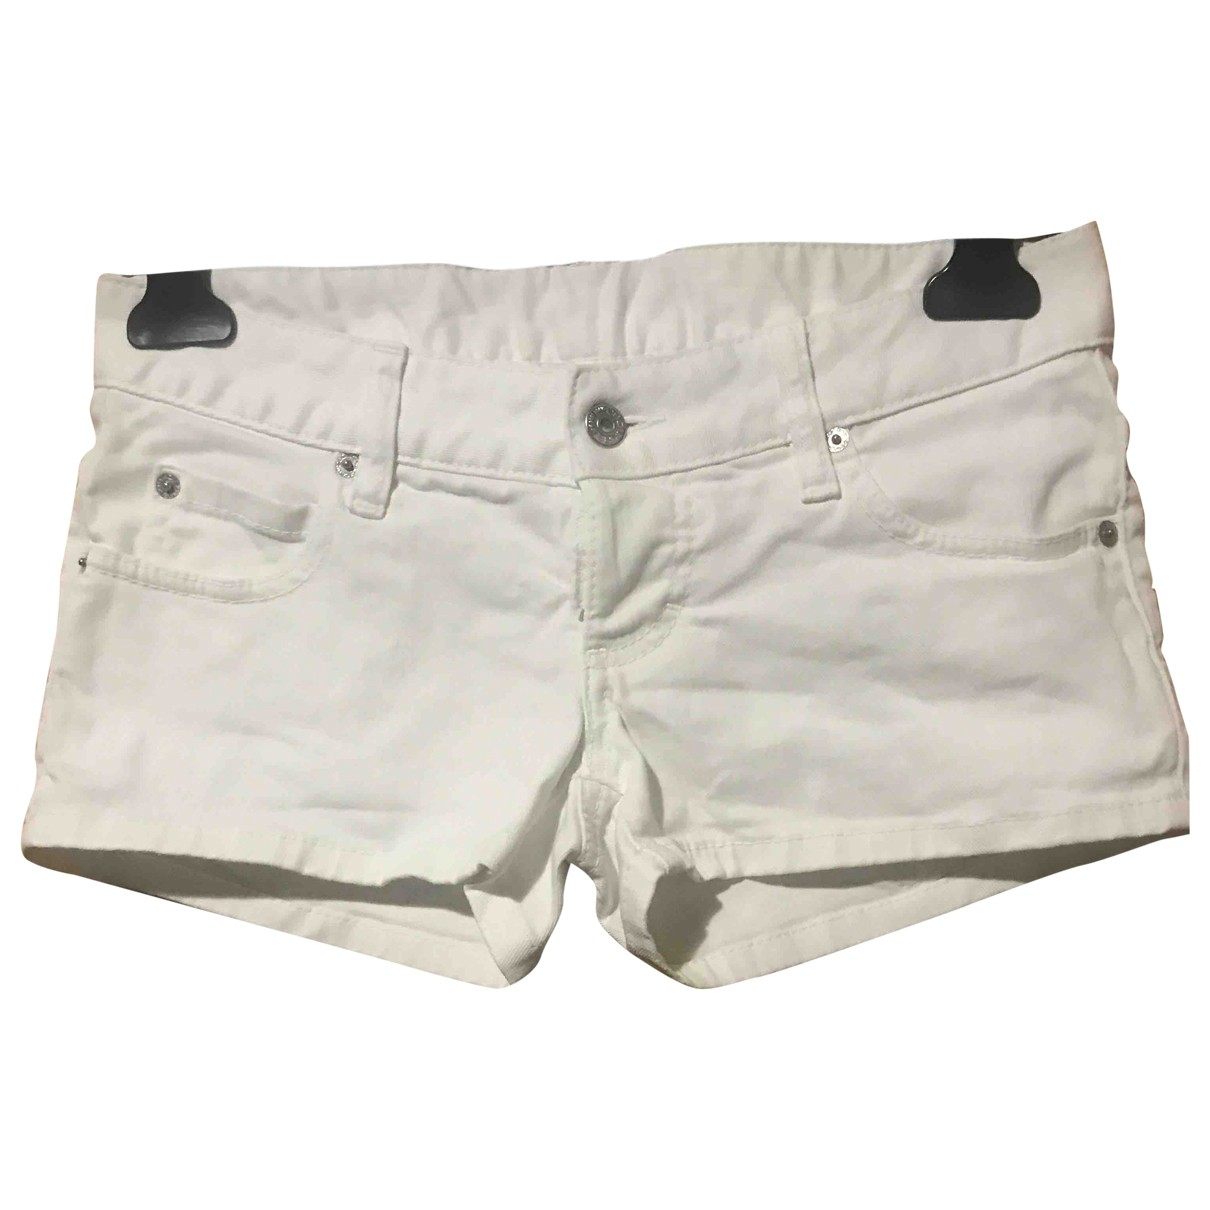 Dsquared2 \N Shorts in  Weiss Baumwolle - Elasthan